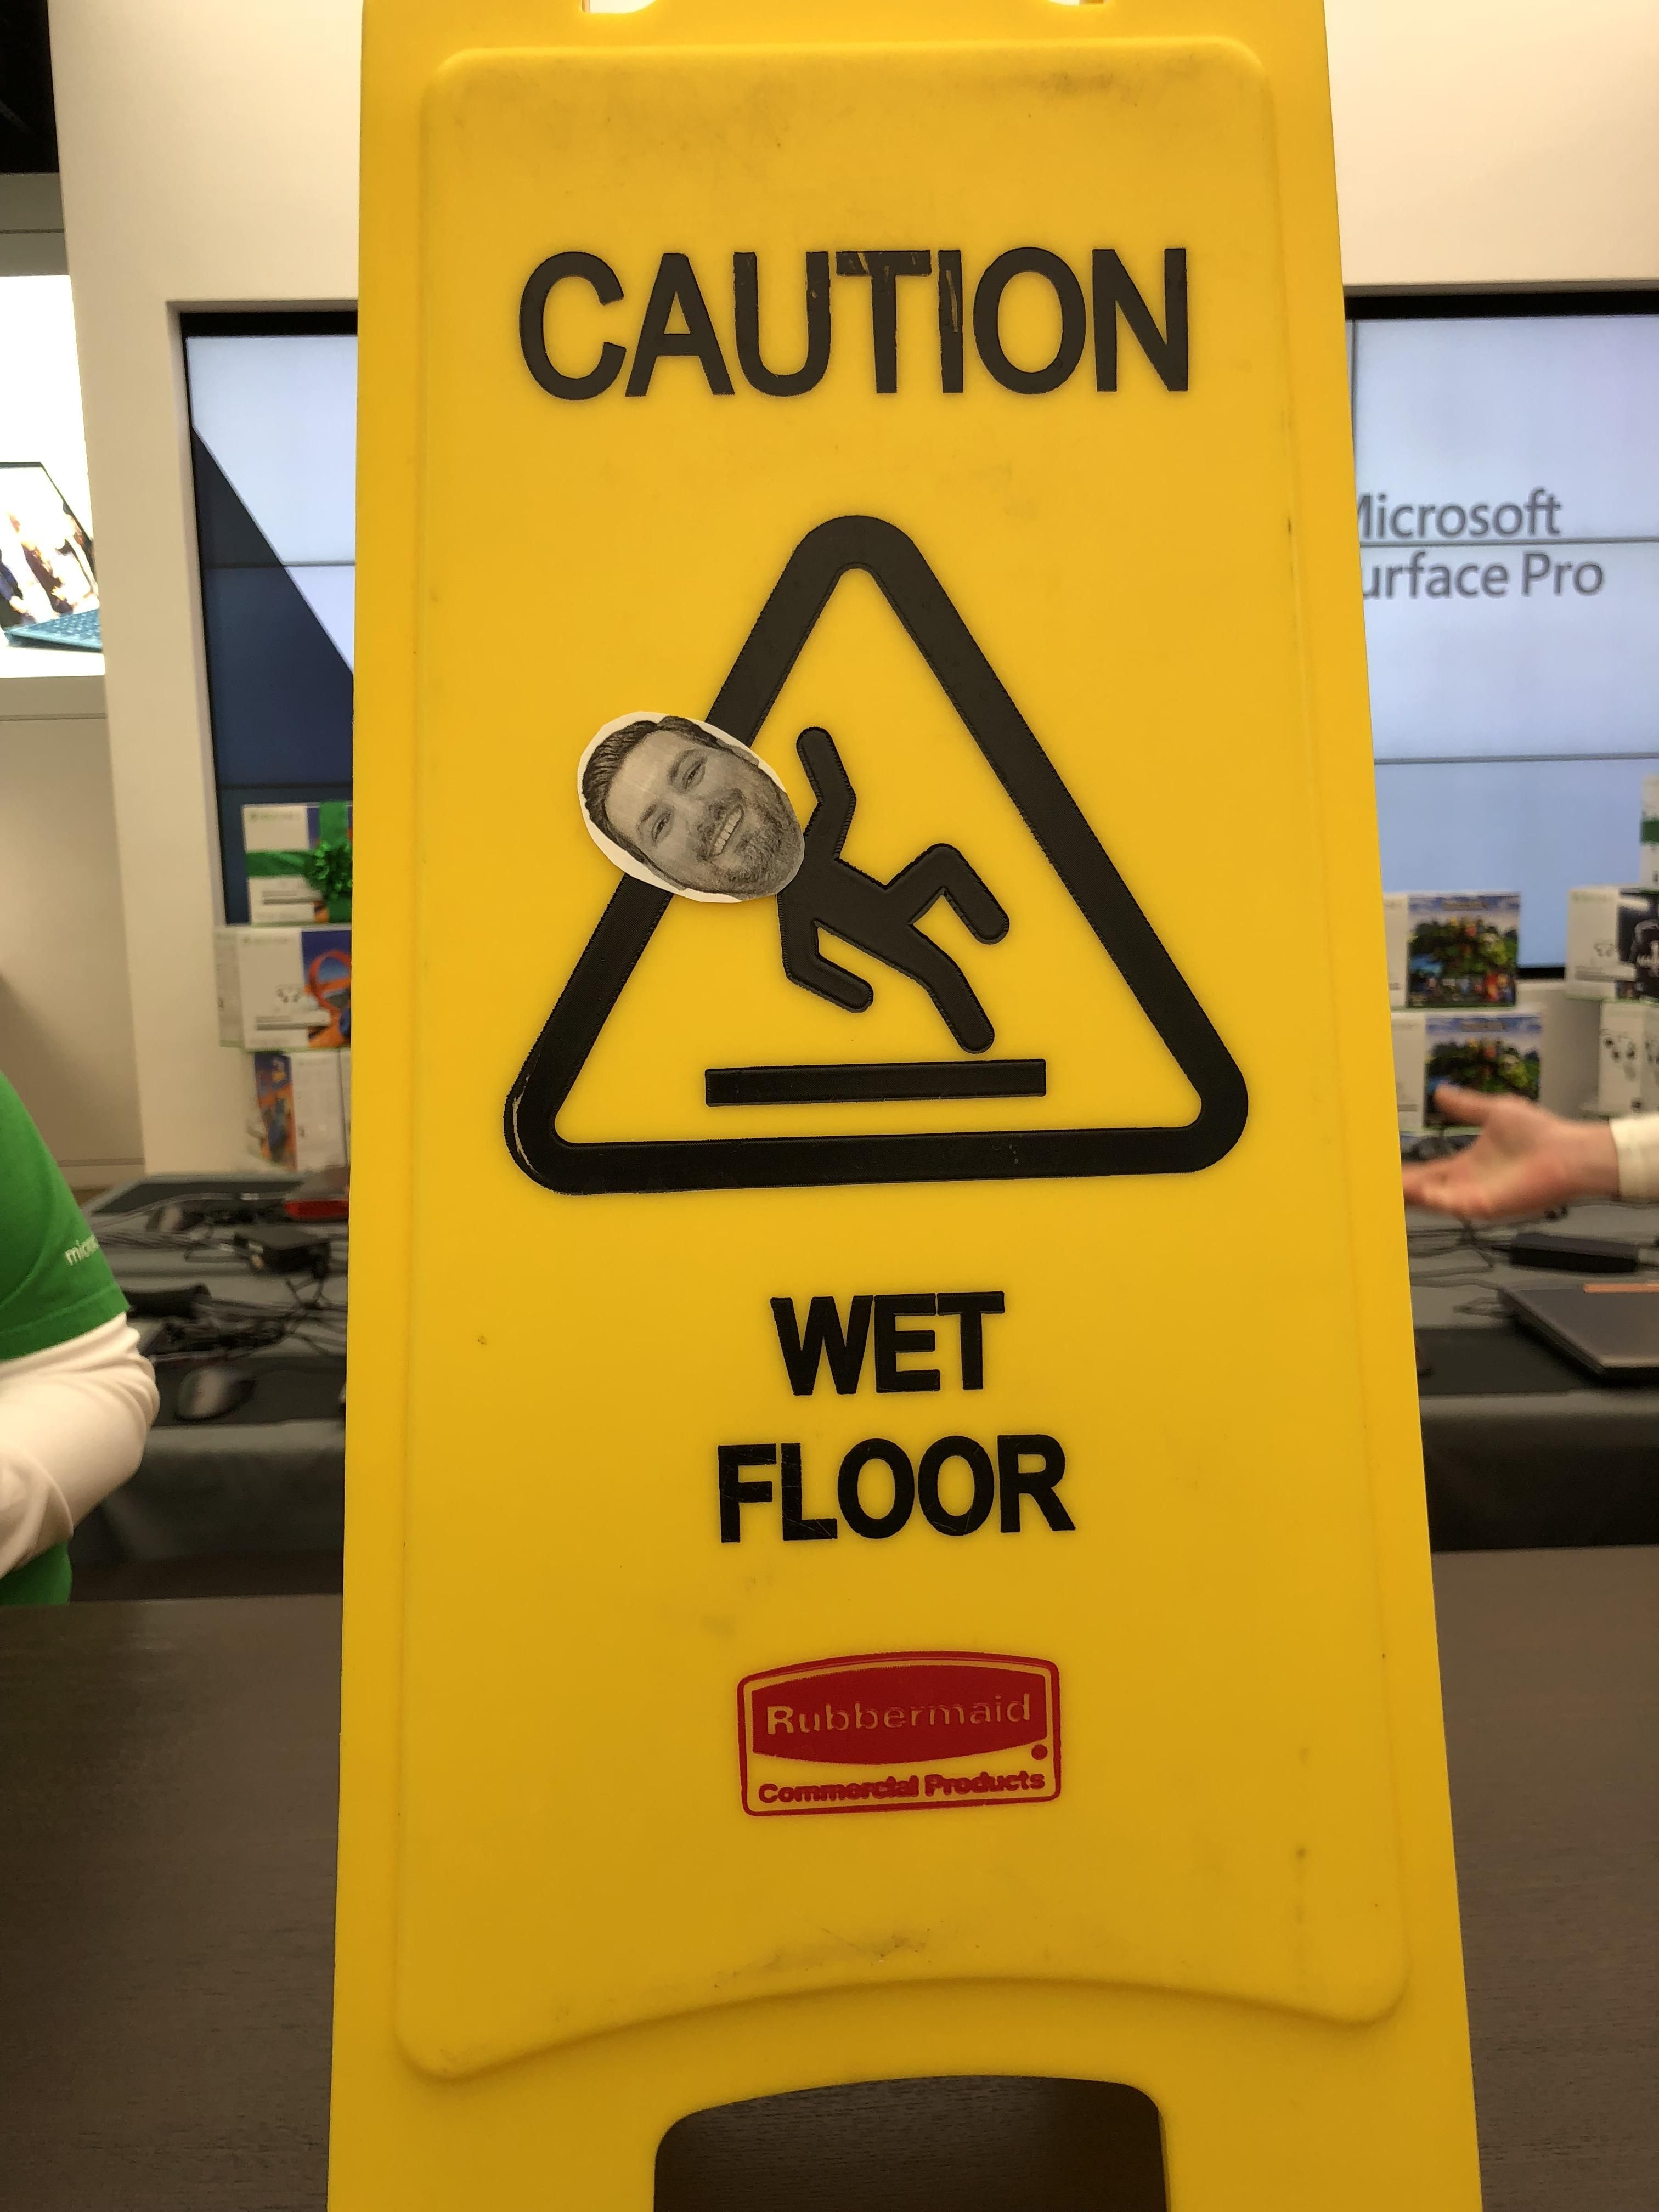 A coworker of mine slipped at work. Someone decided to post his face on the wet floor sign.